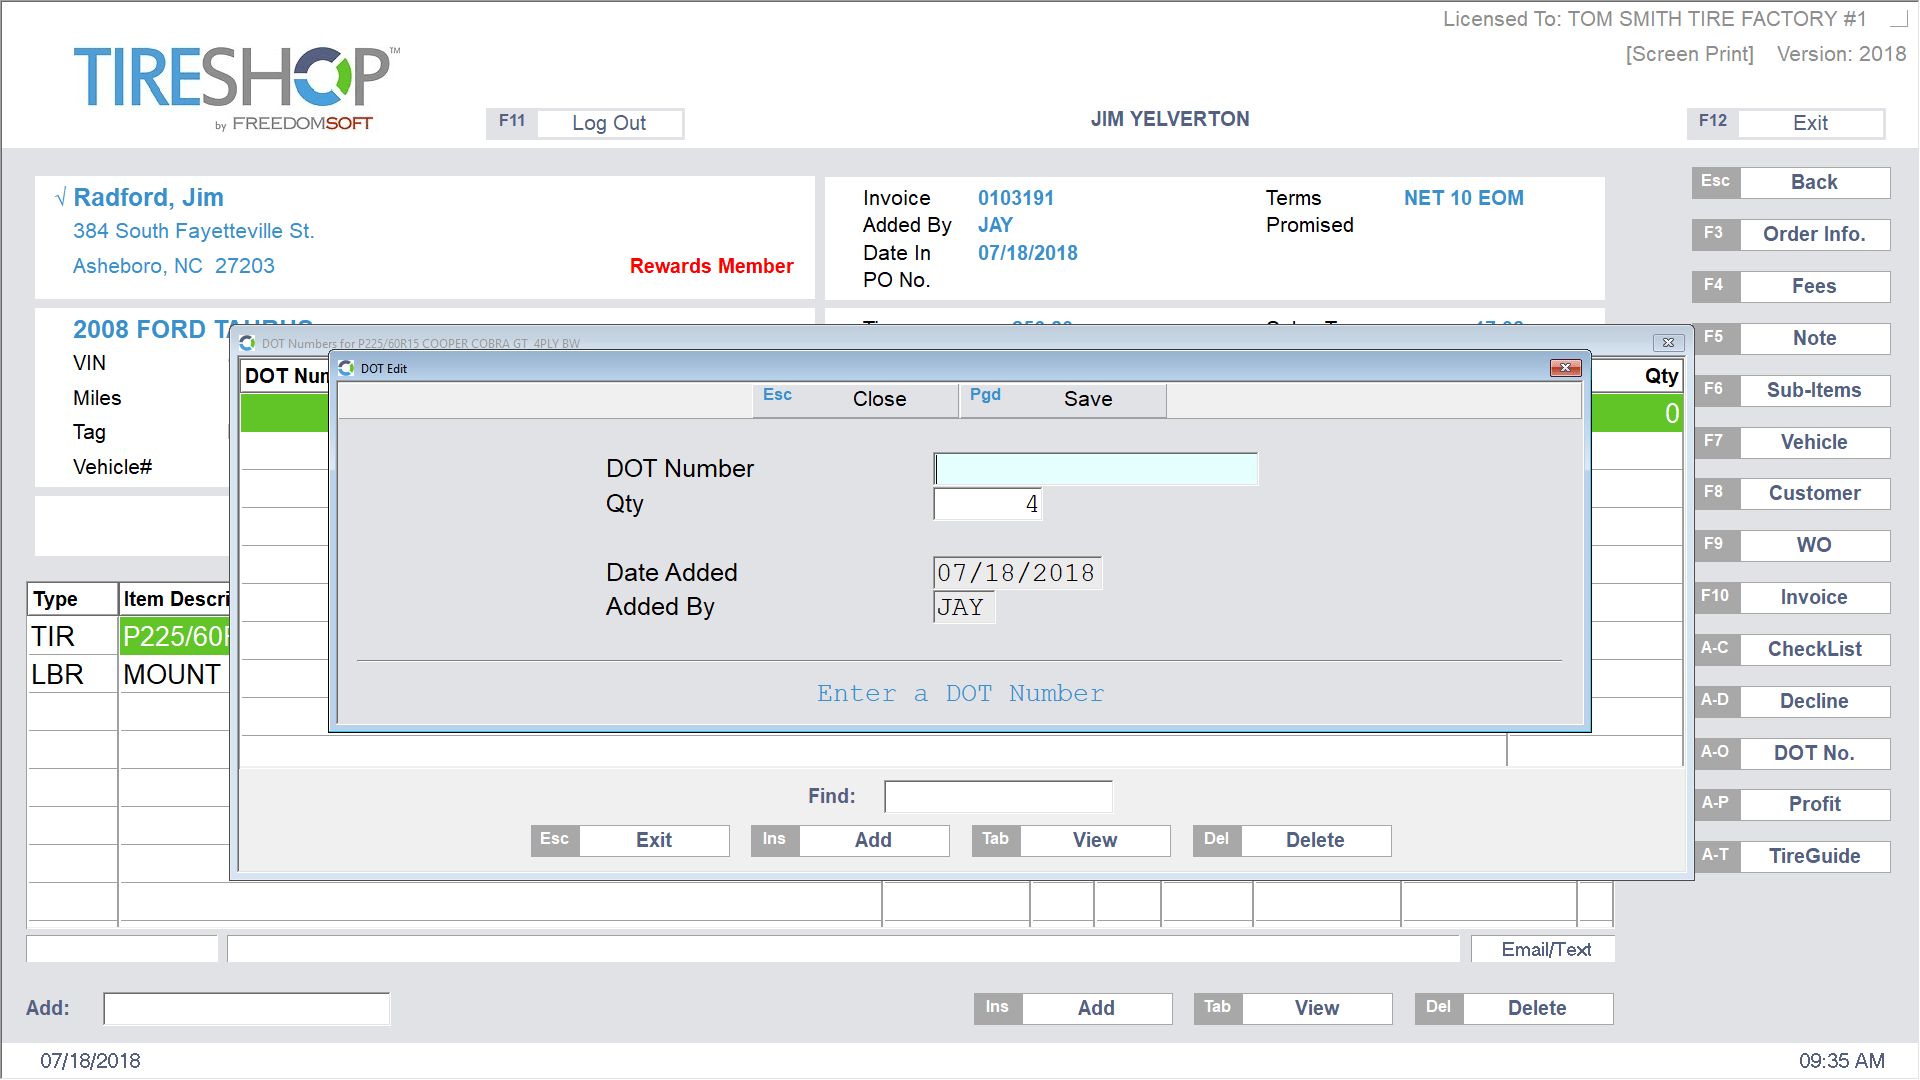 Freedomsoft Registration Screenshot